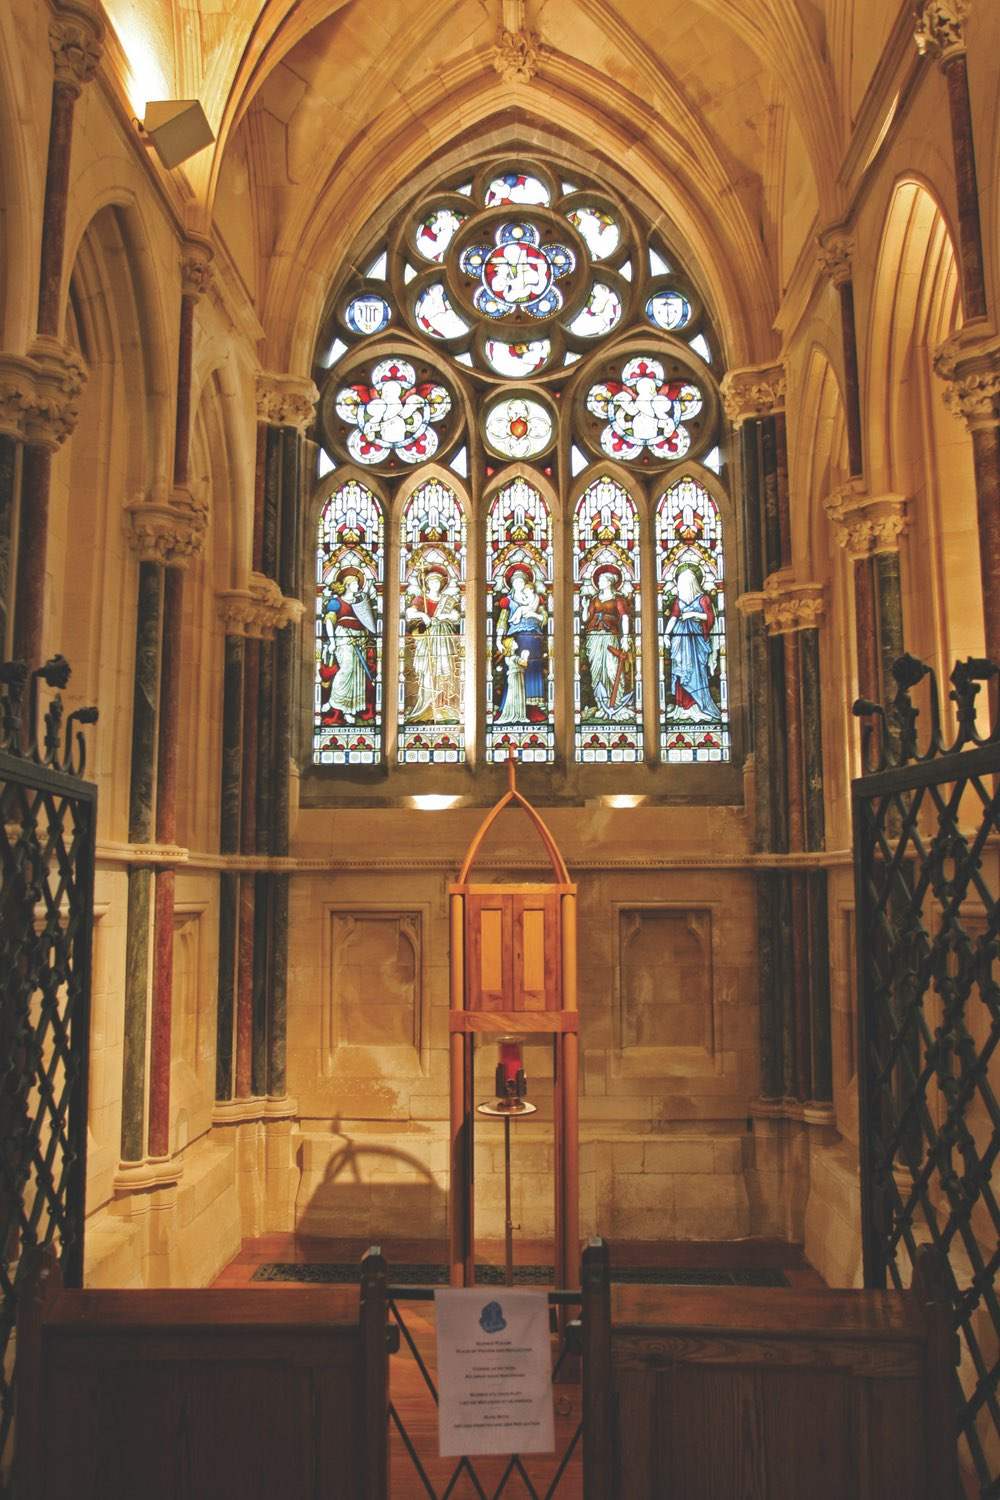 Kylemore Abbey Church Interior